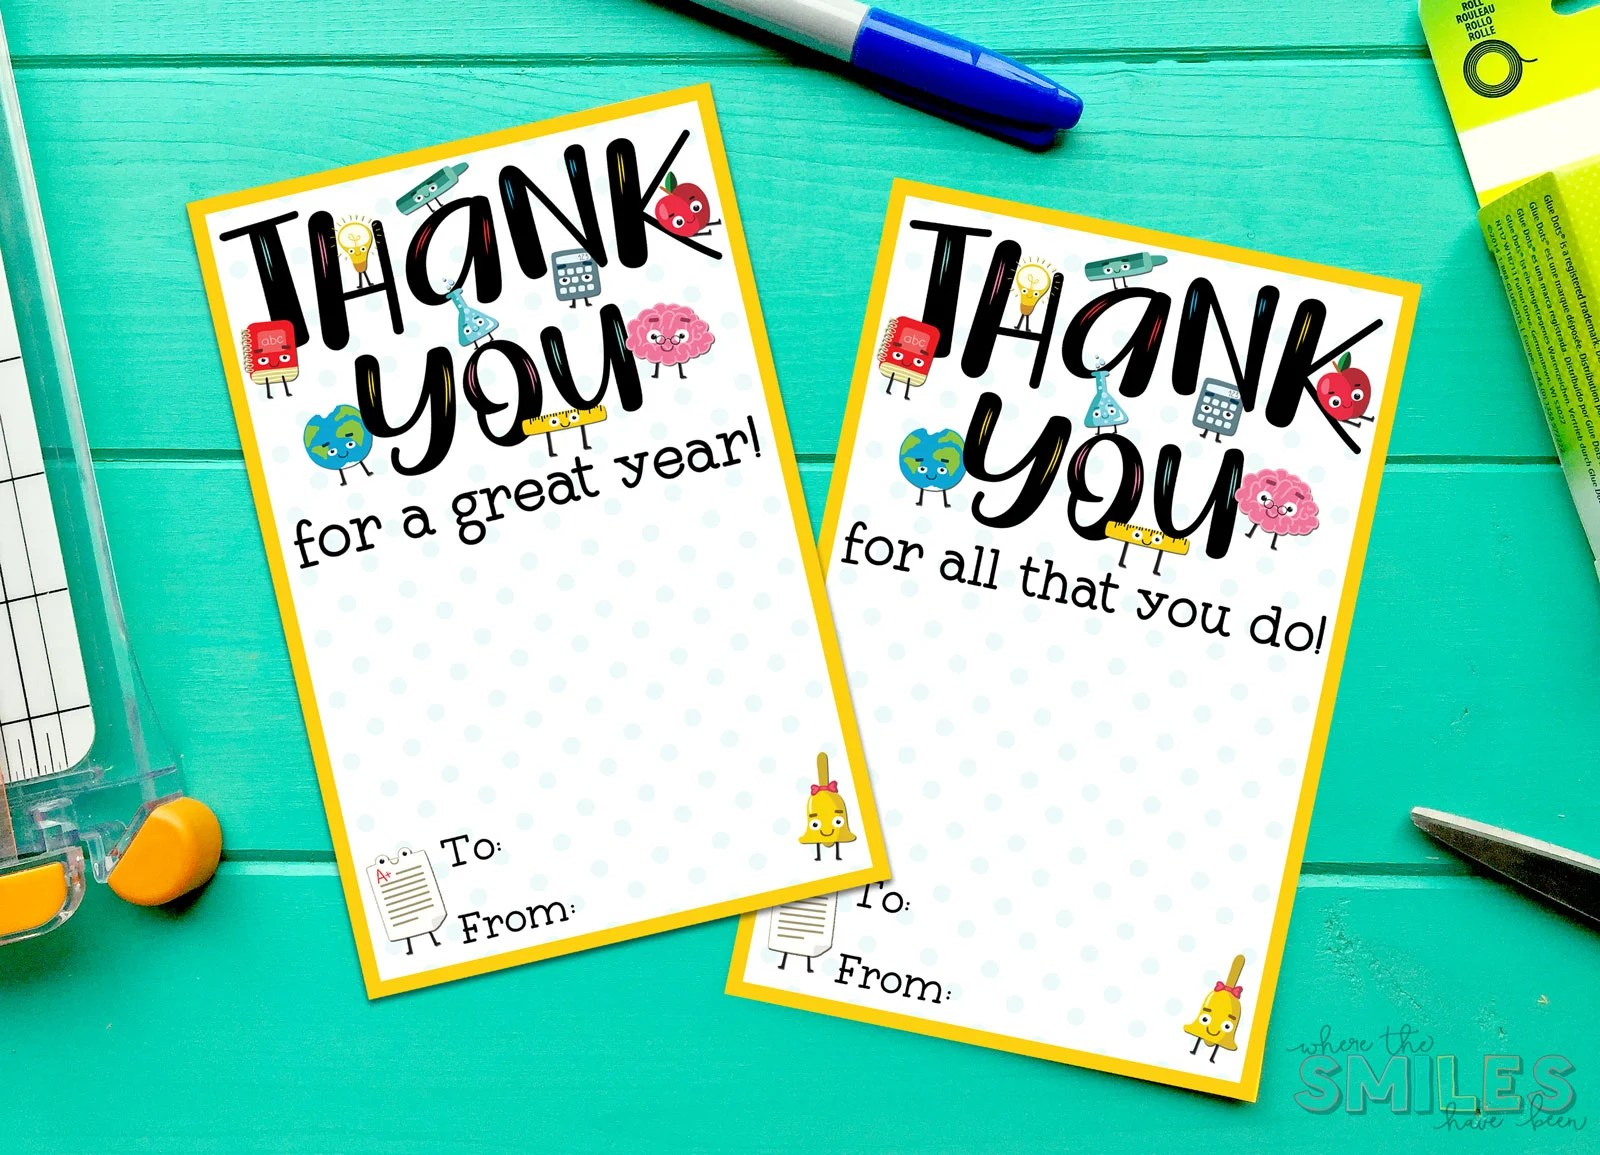 picture about Thank You Teacher Free Printable named Totally free Instructor Appreciation Thank On your own Printable - 2 Products!